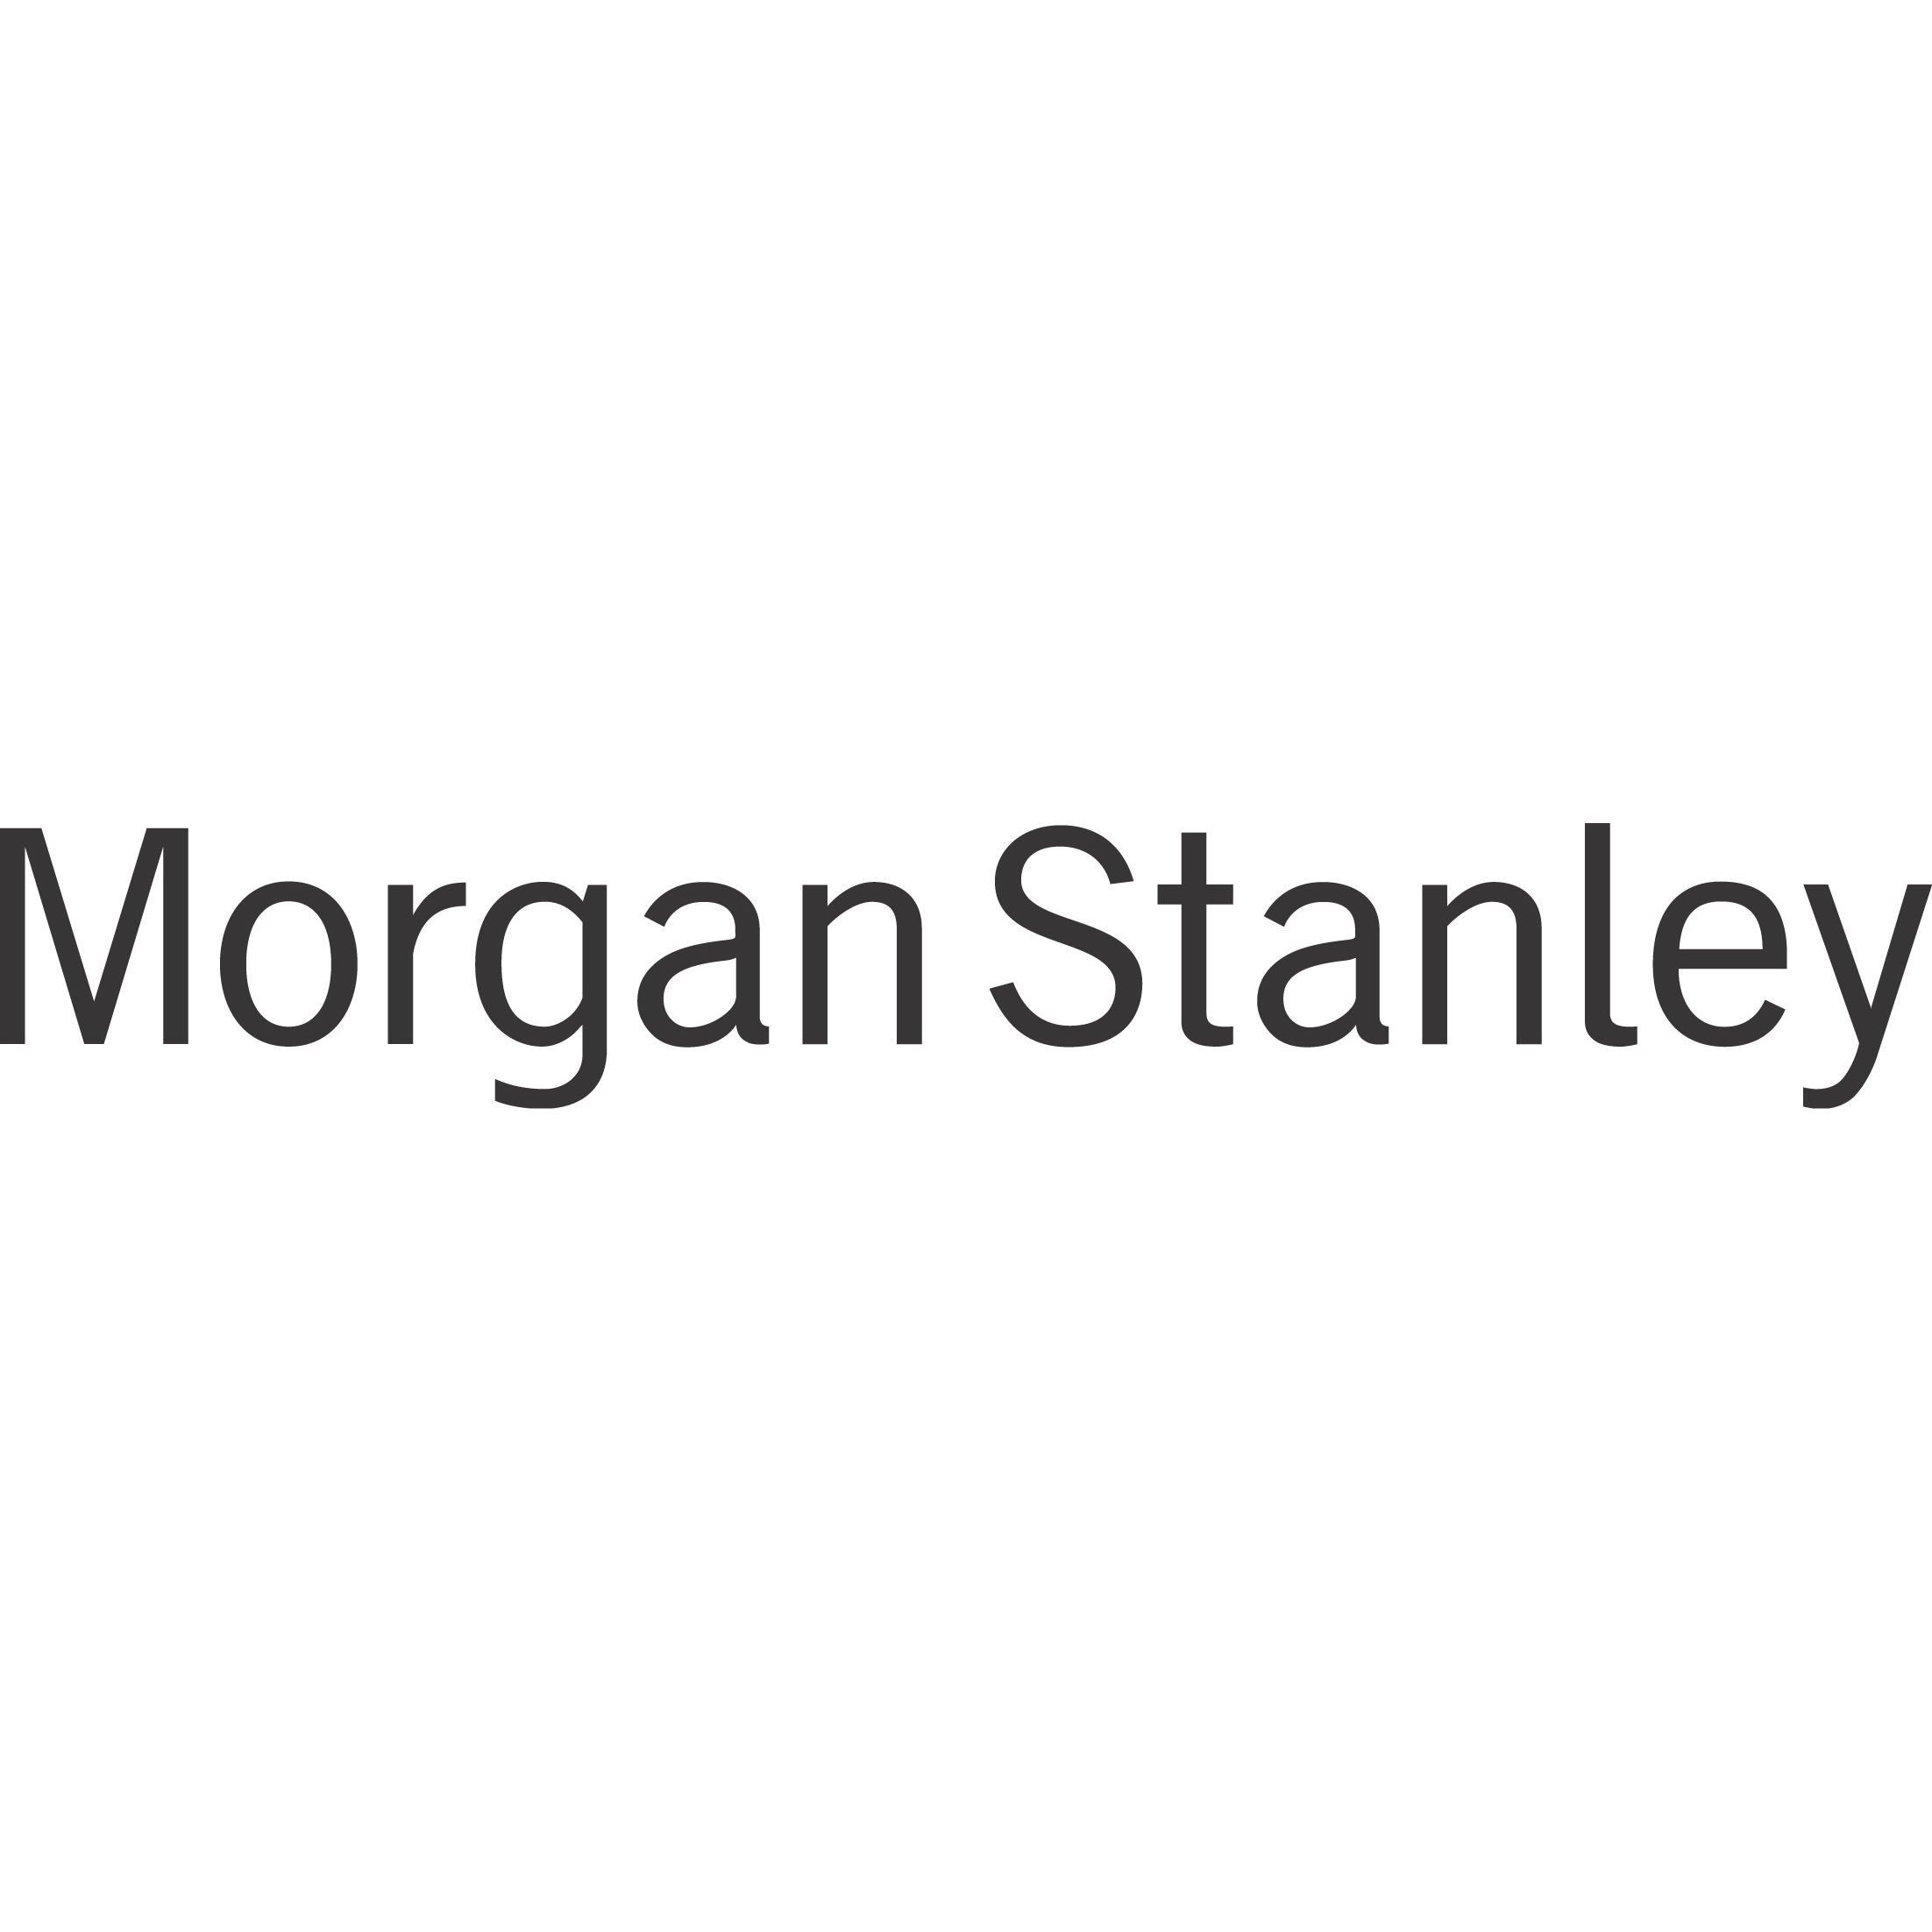 Charles E Norwood - Morgan Stanley | Financial Advisor in Birmingham,Alabama